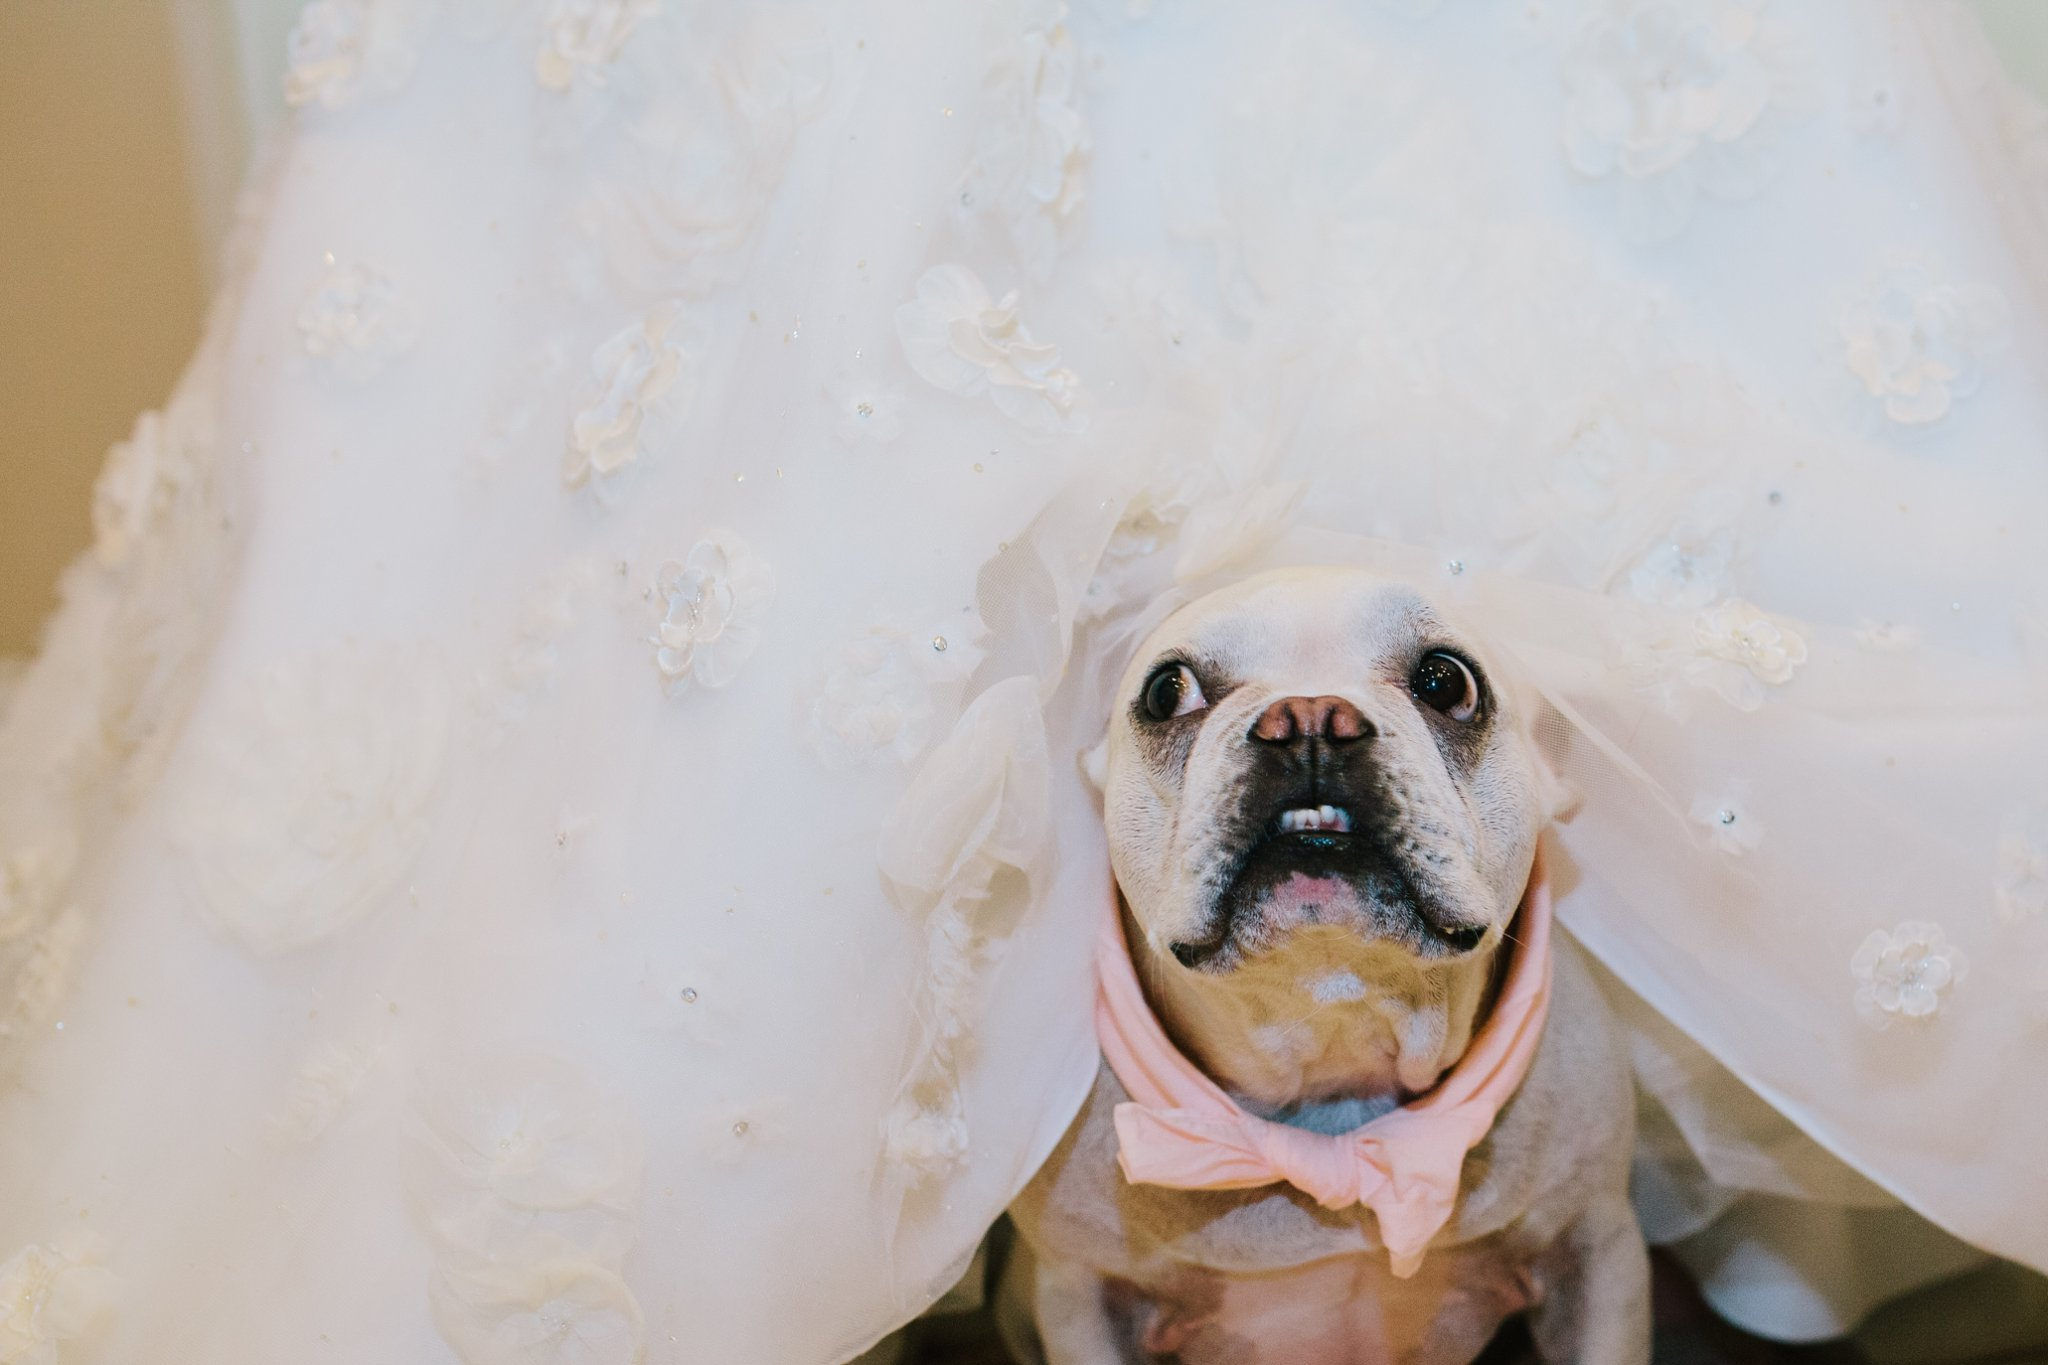 funny bulldog peaking out from under bride's dress